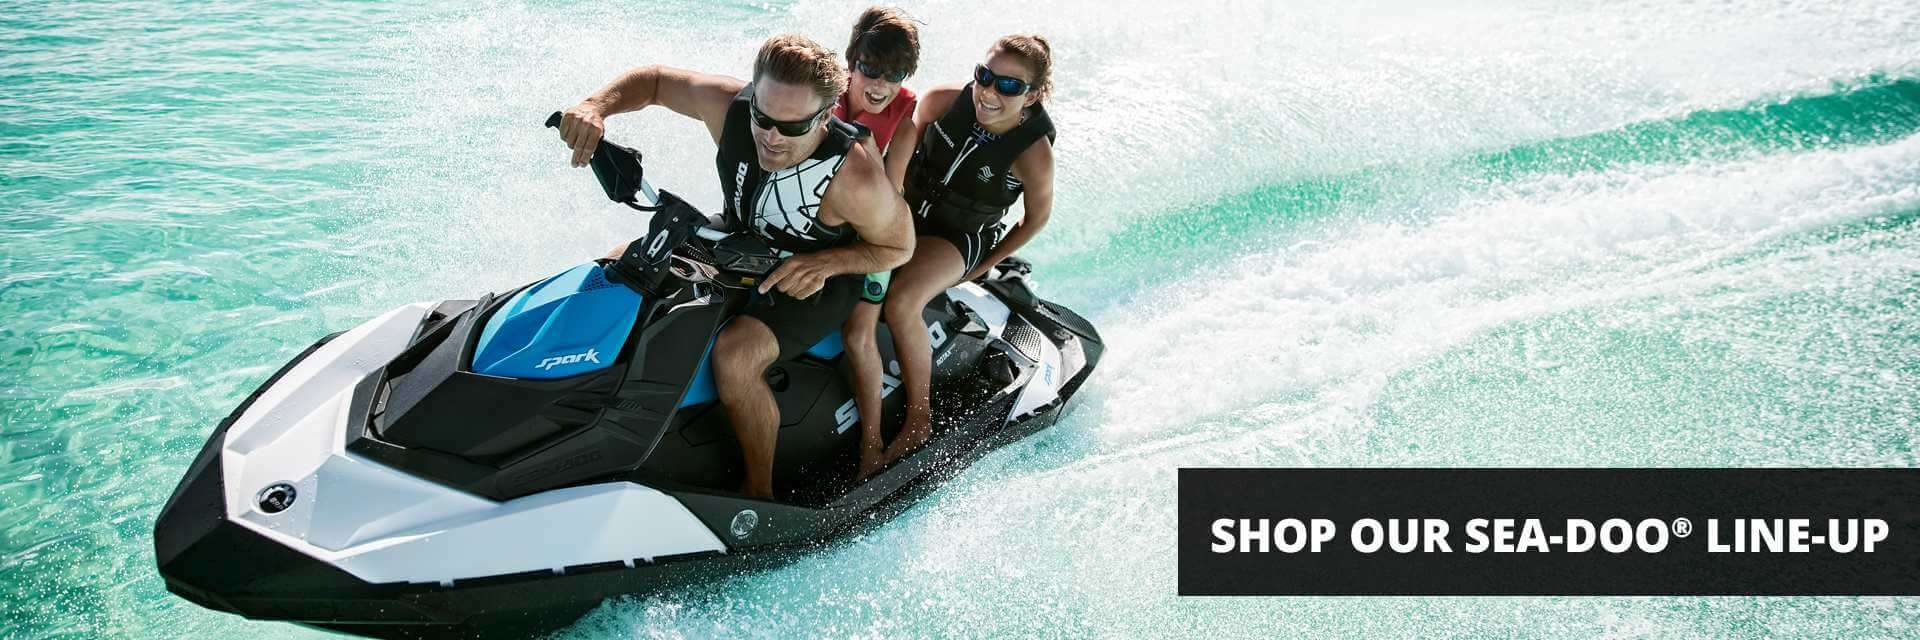 Broadway Powersports | Shop Sea-Doo Line-Up